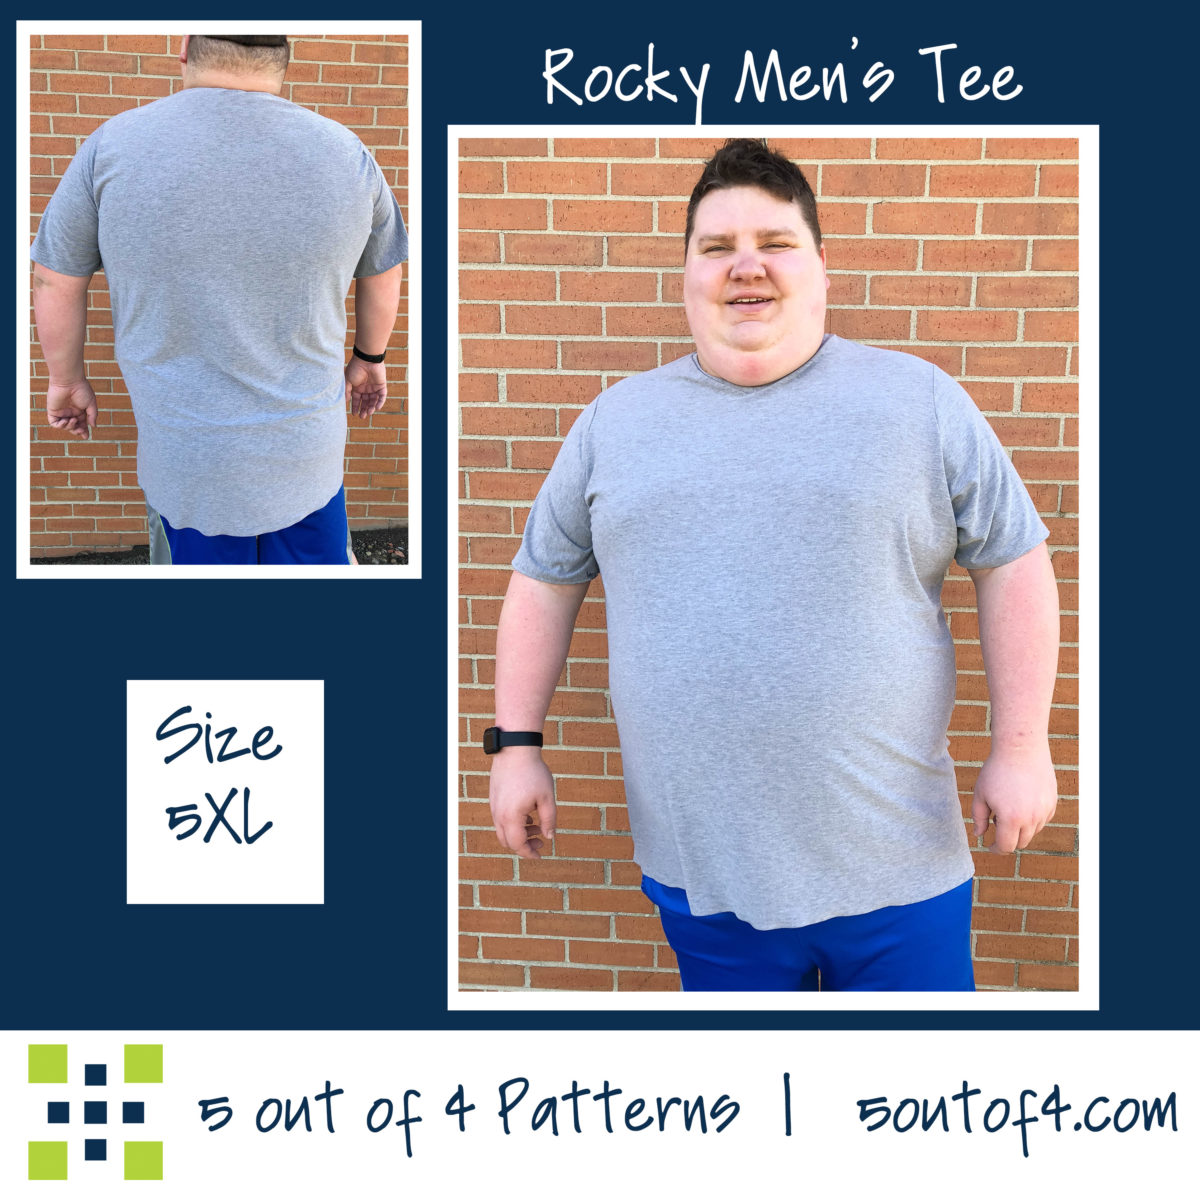 5oo4 Men's Rocky Semi-fitted Tee sz5XL